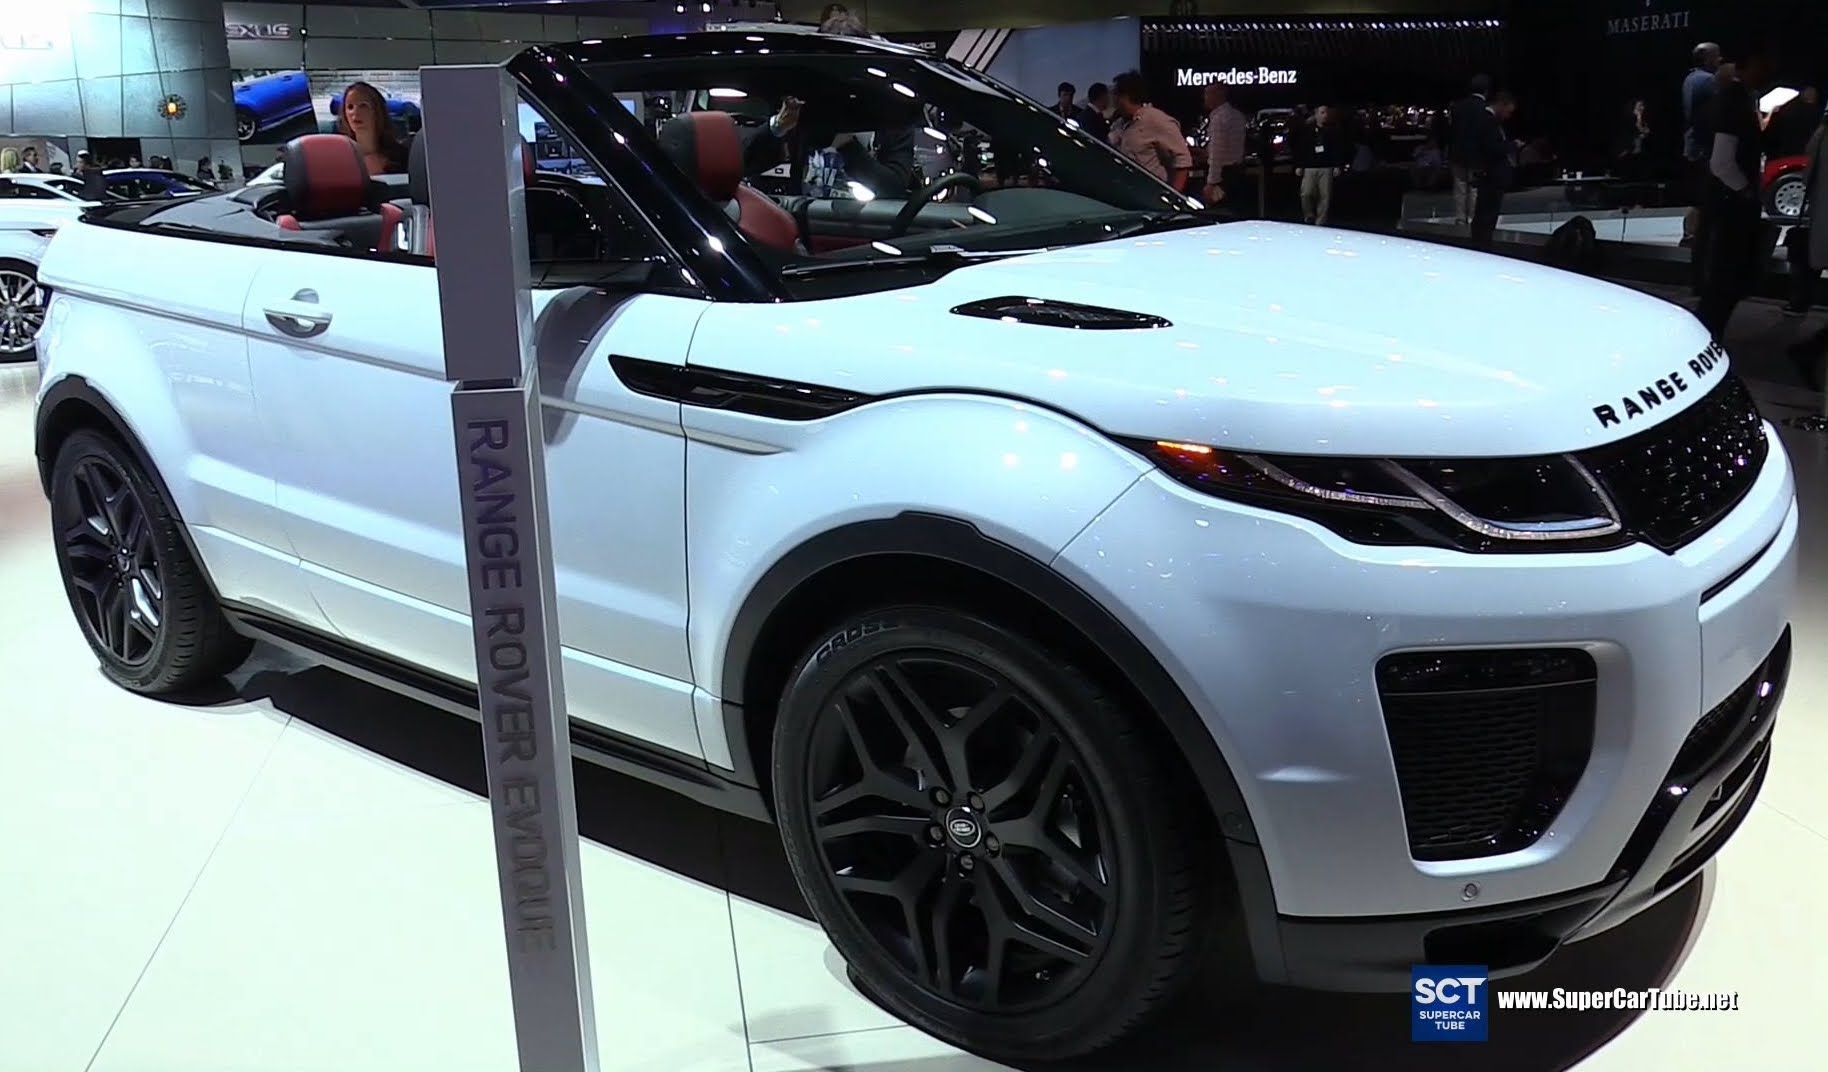 2017 Range Rover Evoque Convertible Exterior and